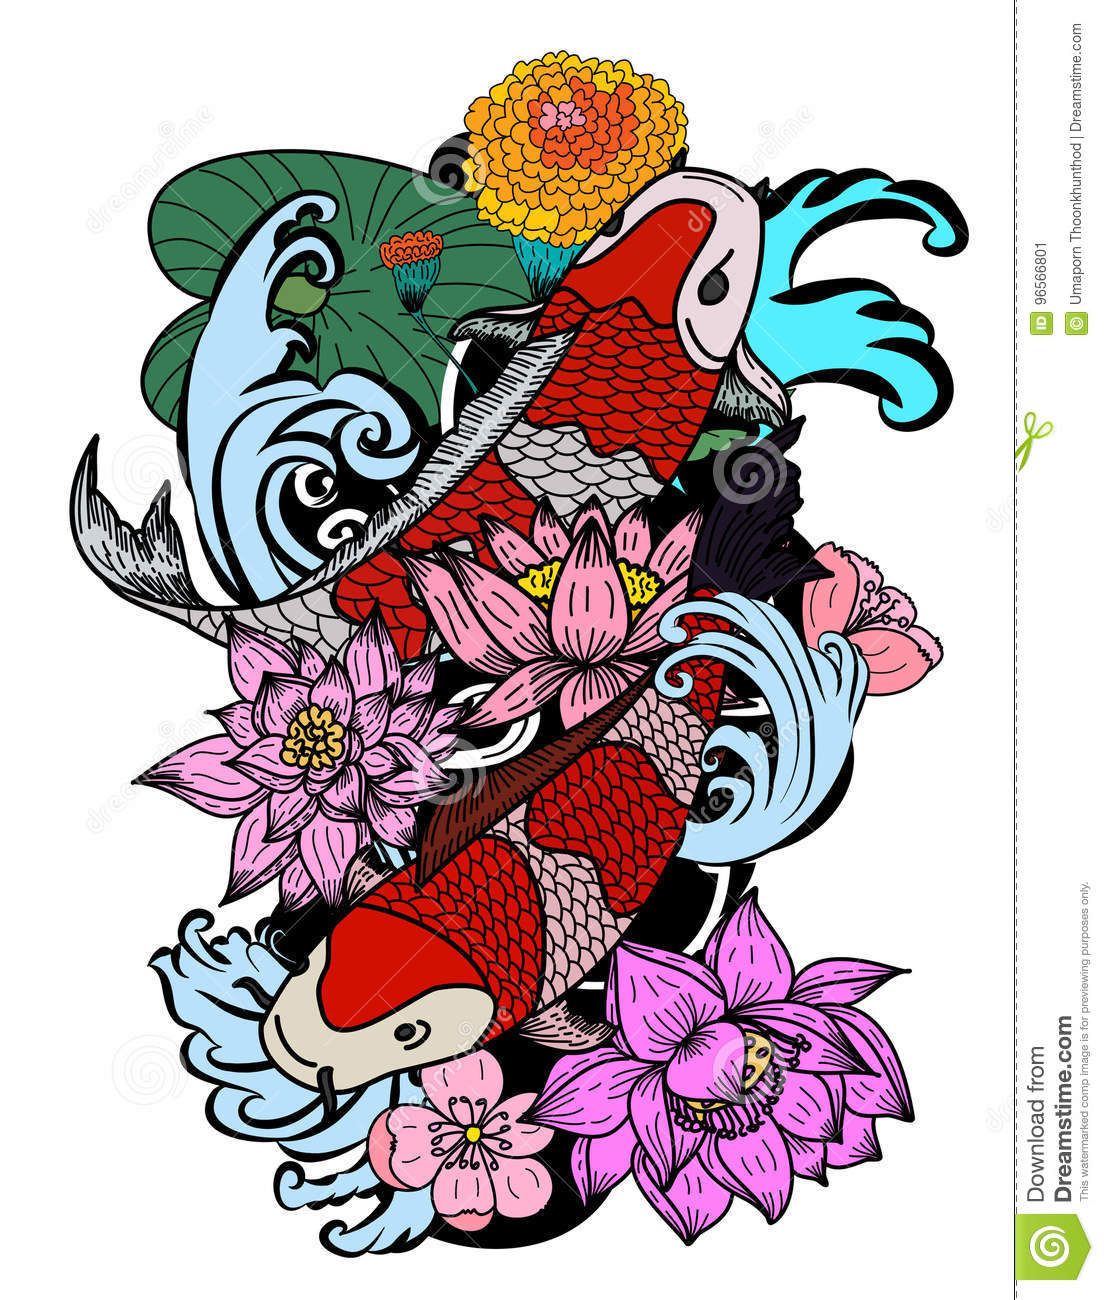 dc0389ed3 koi fish tattoo meaning español Colorful Koi Fish And Flower Stock Vector  - Illustration of drawing .